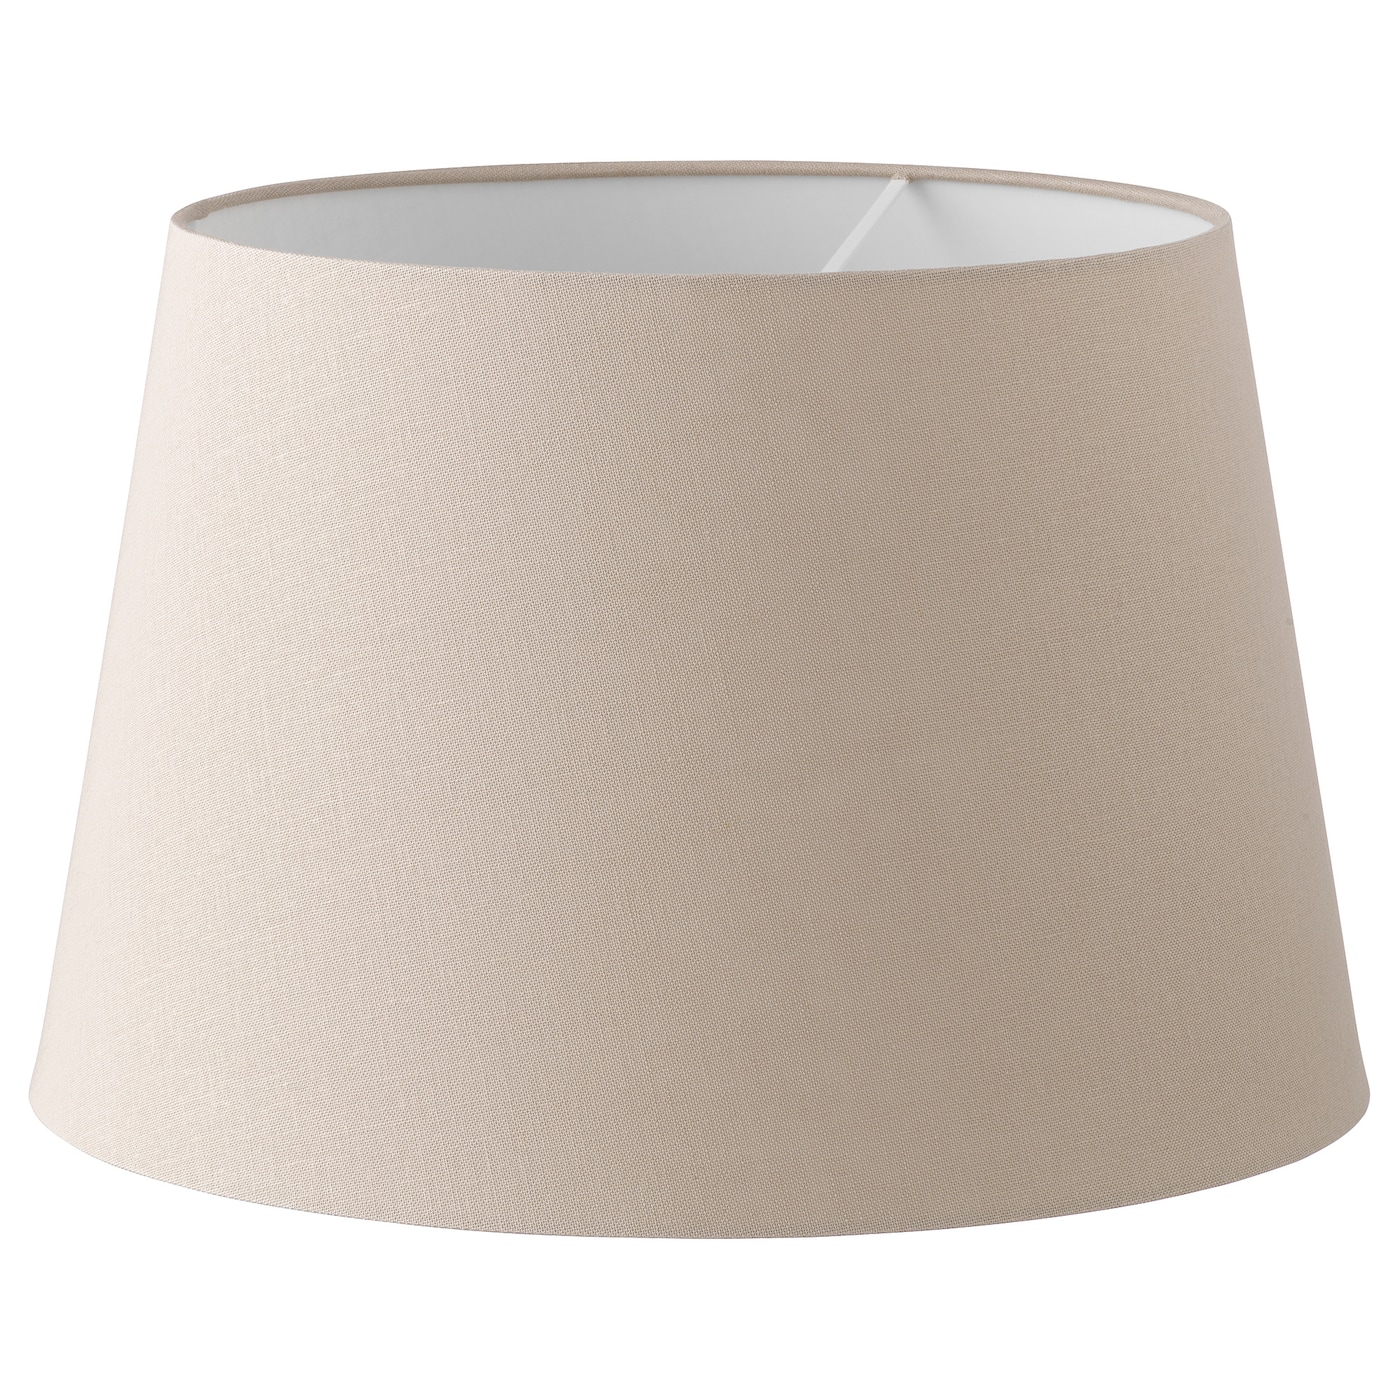 Ikea Lamp Shade Replacement: Light Fittings & Ceiling Light Shades